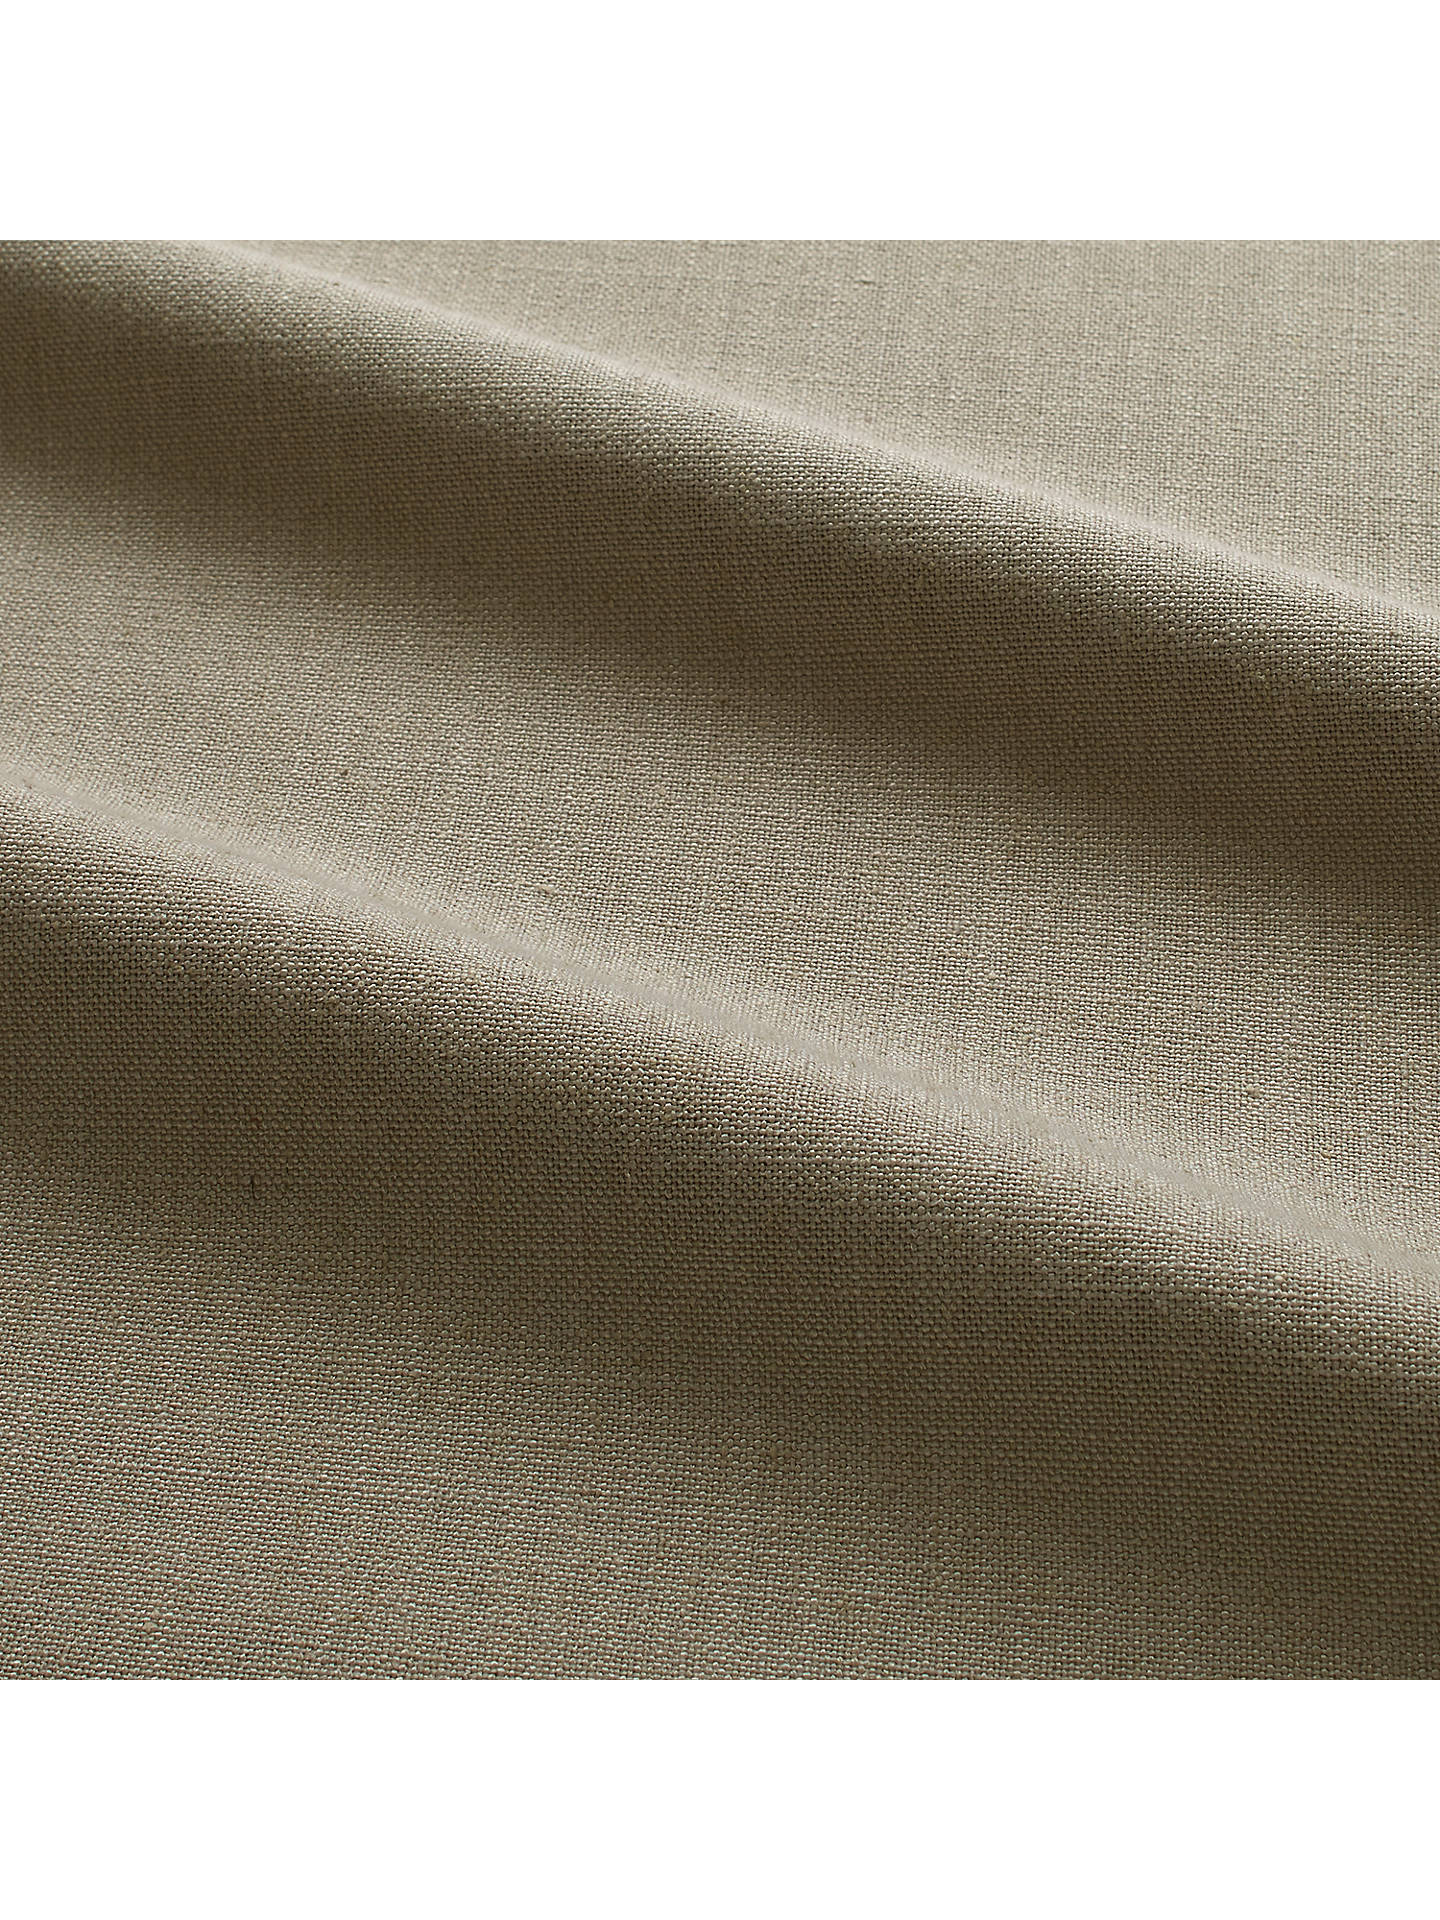 Buy John Lewis & Partners Petersham Furnishing Fabric, French Grey Online at johnlewis.com